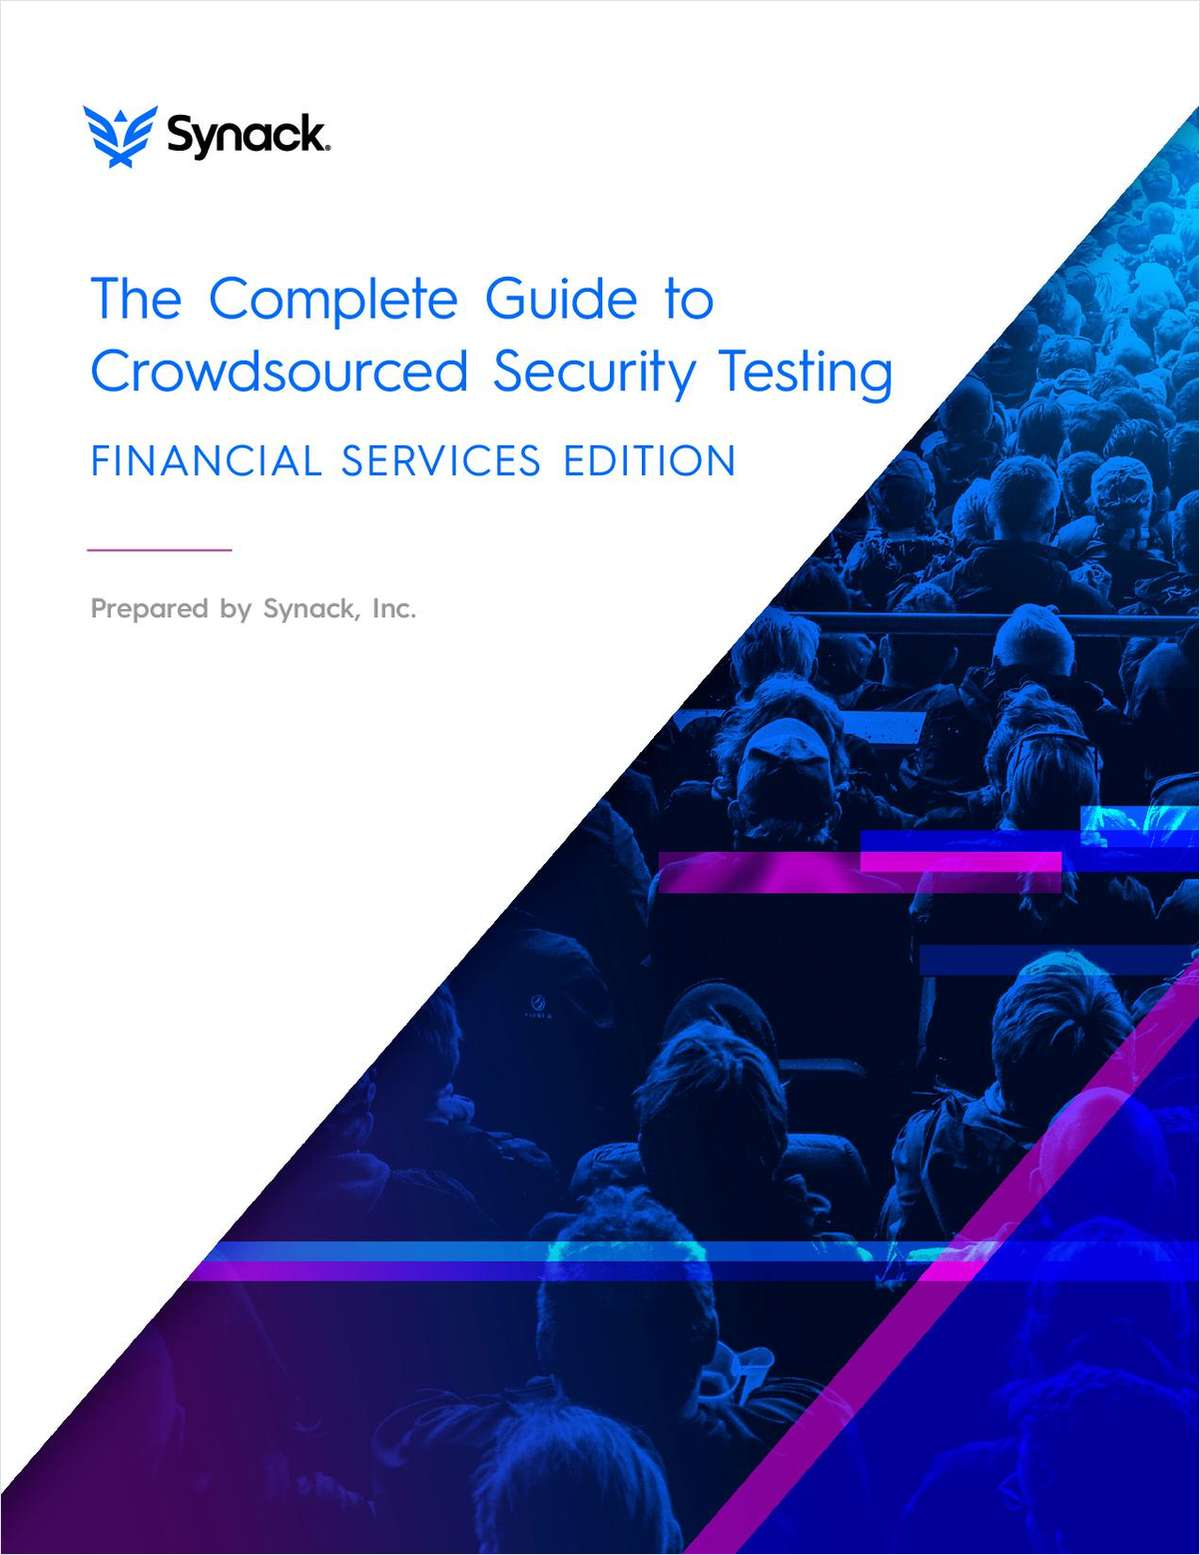 The Complete Guide to Crowdsourced Security Testing - Financial Services Edition